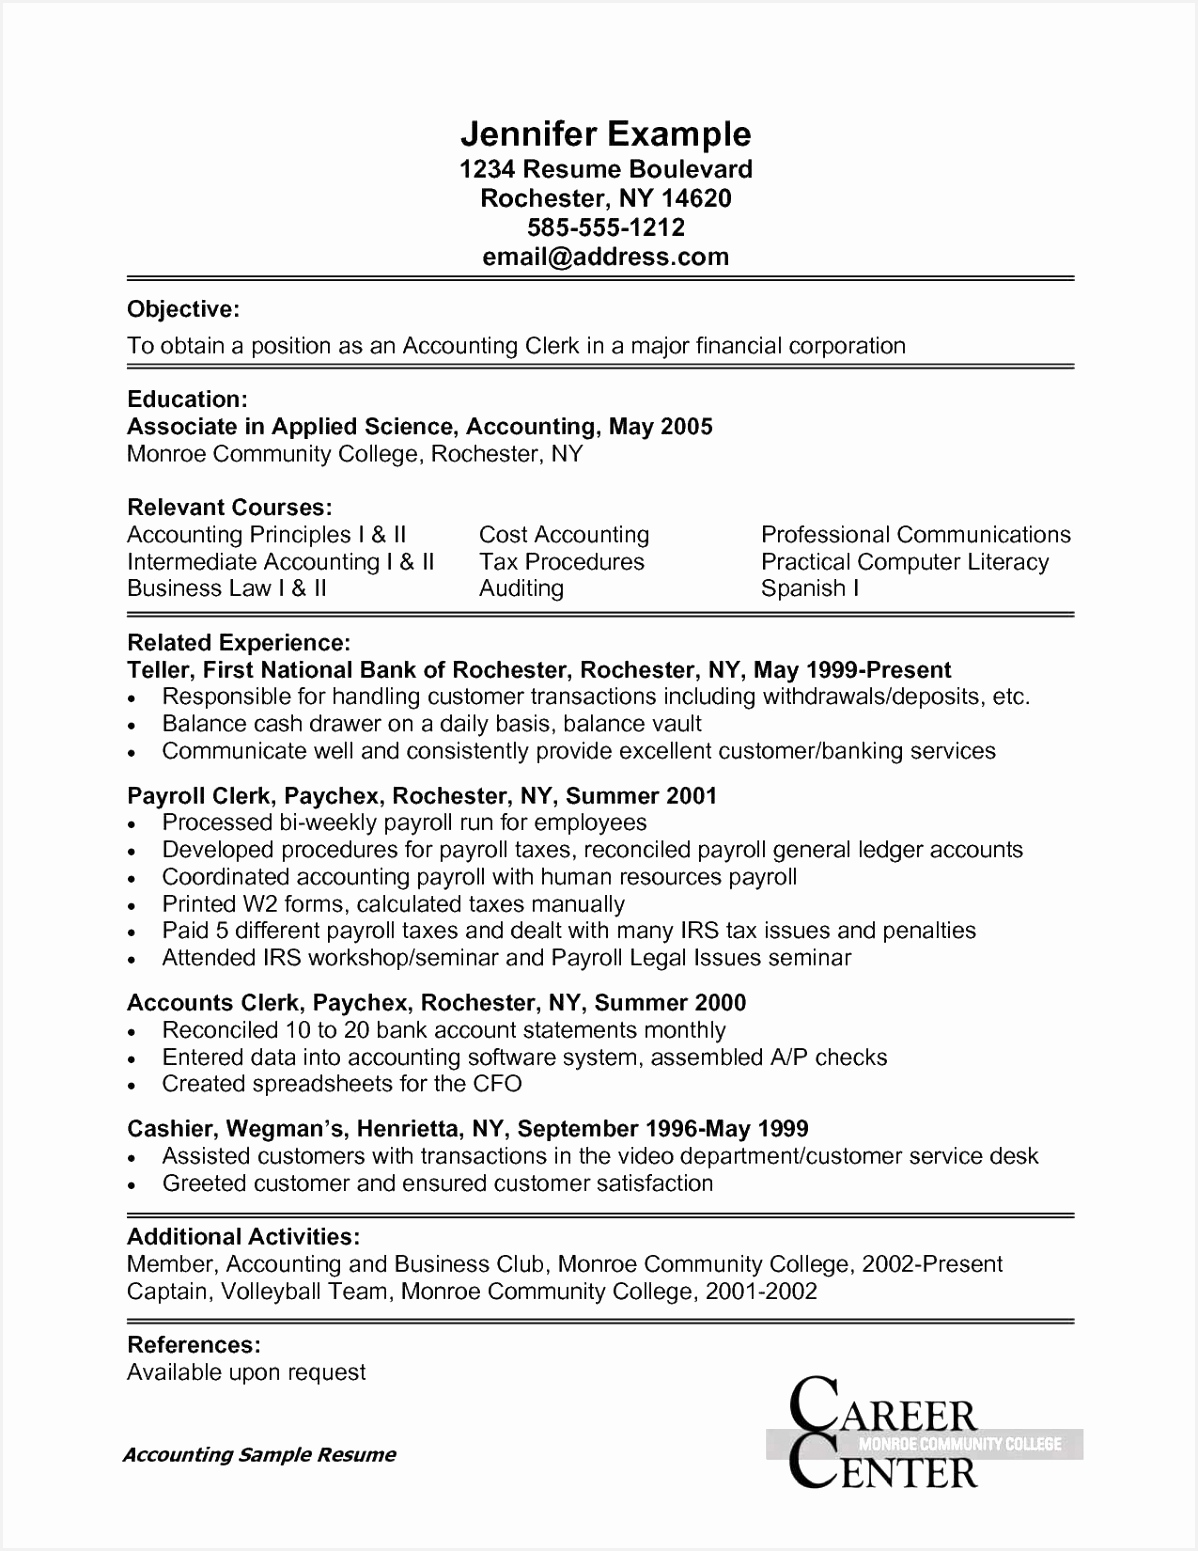 Finance Clerk Sample Resume T3kmo Elegant 36 Example Law Clerk Resumes Samples All About Resume15511198